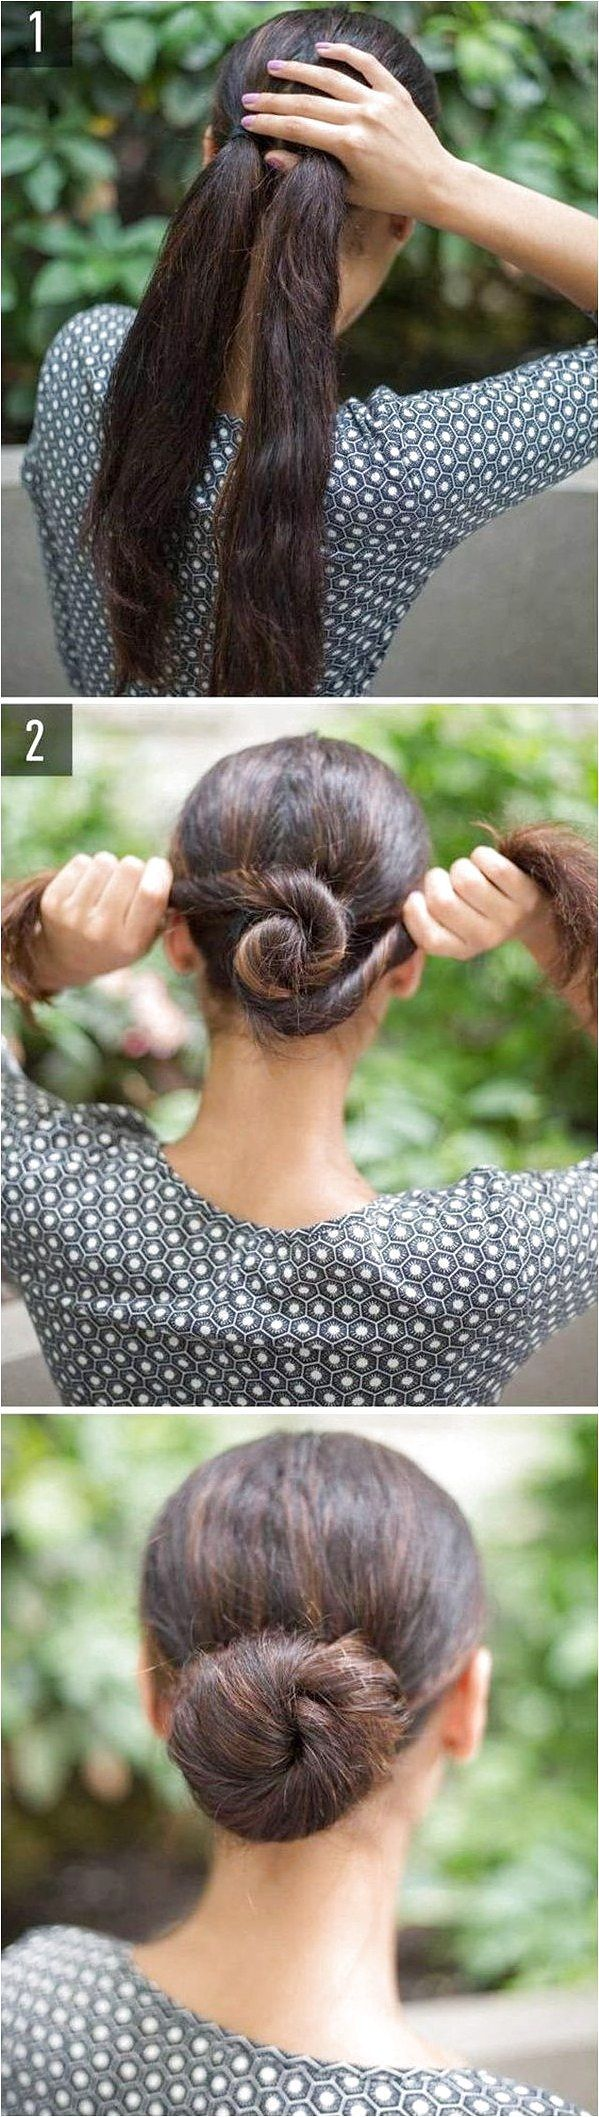 40 Easy Hairstyles for Schools to Try in 2016   - click on the image or link for...